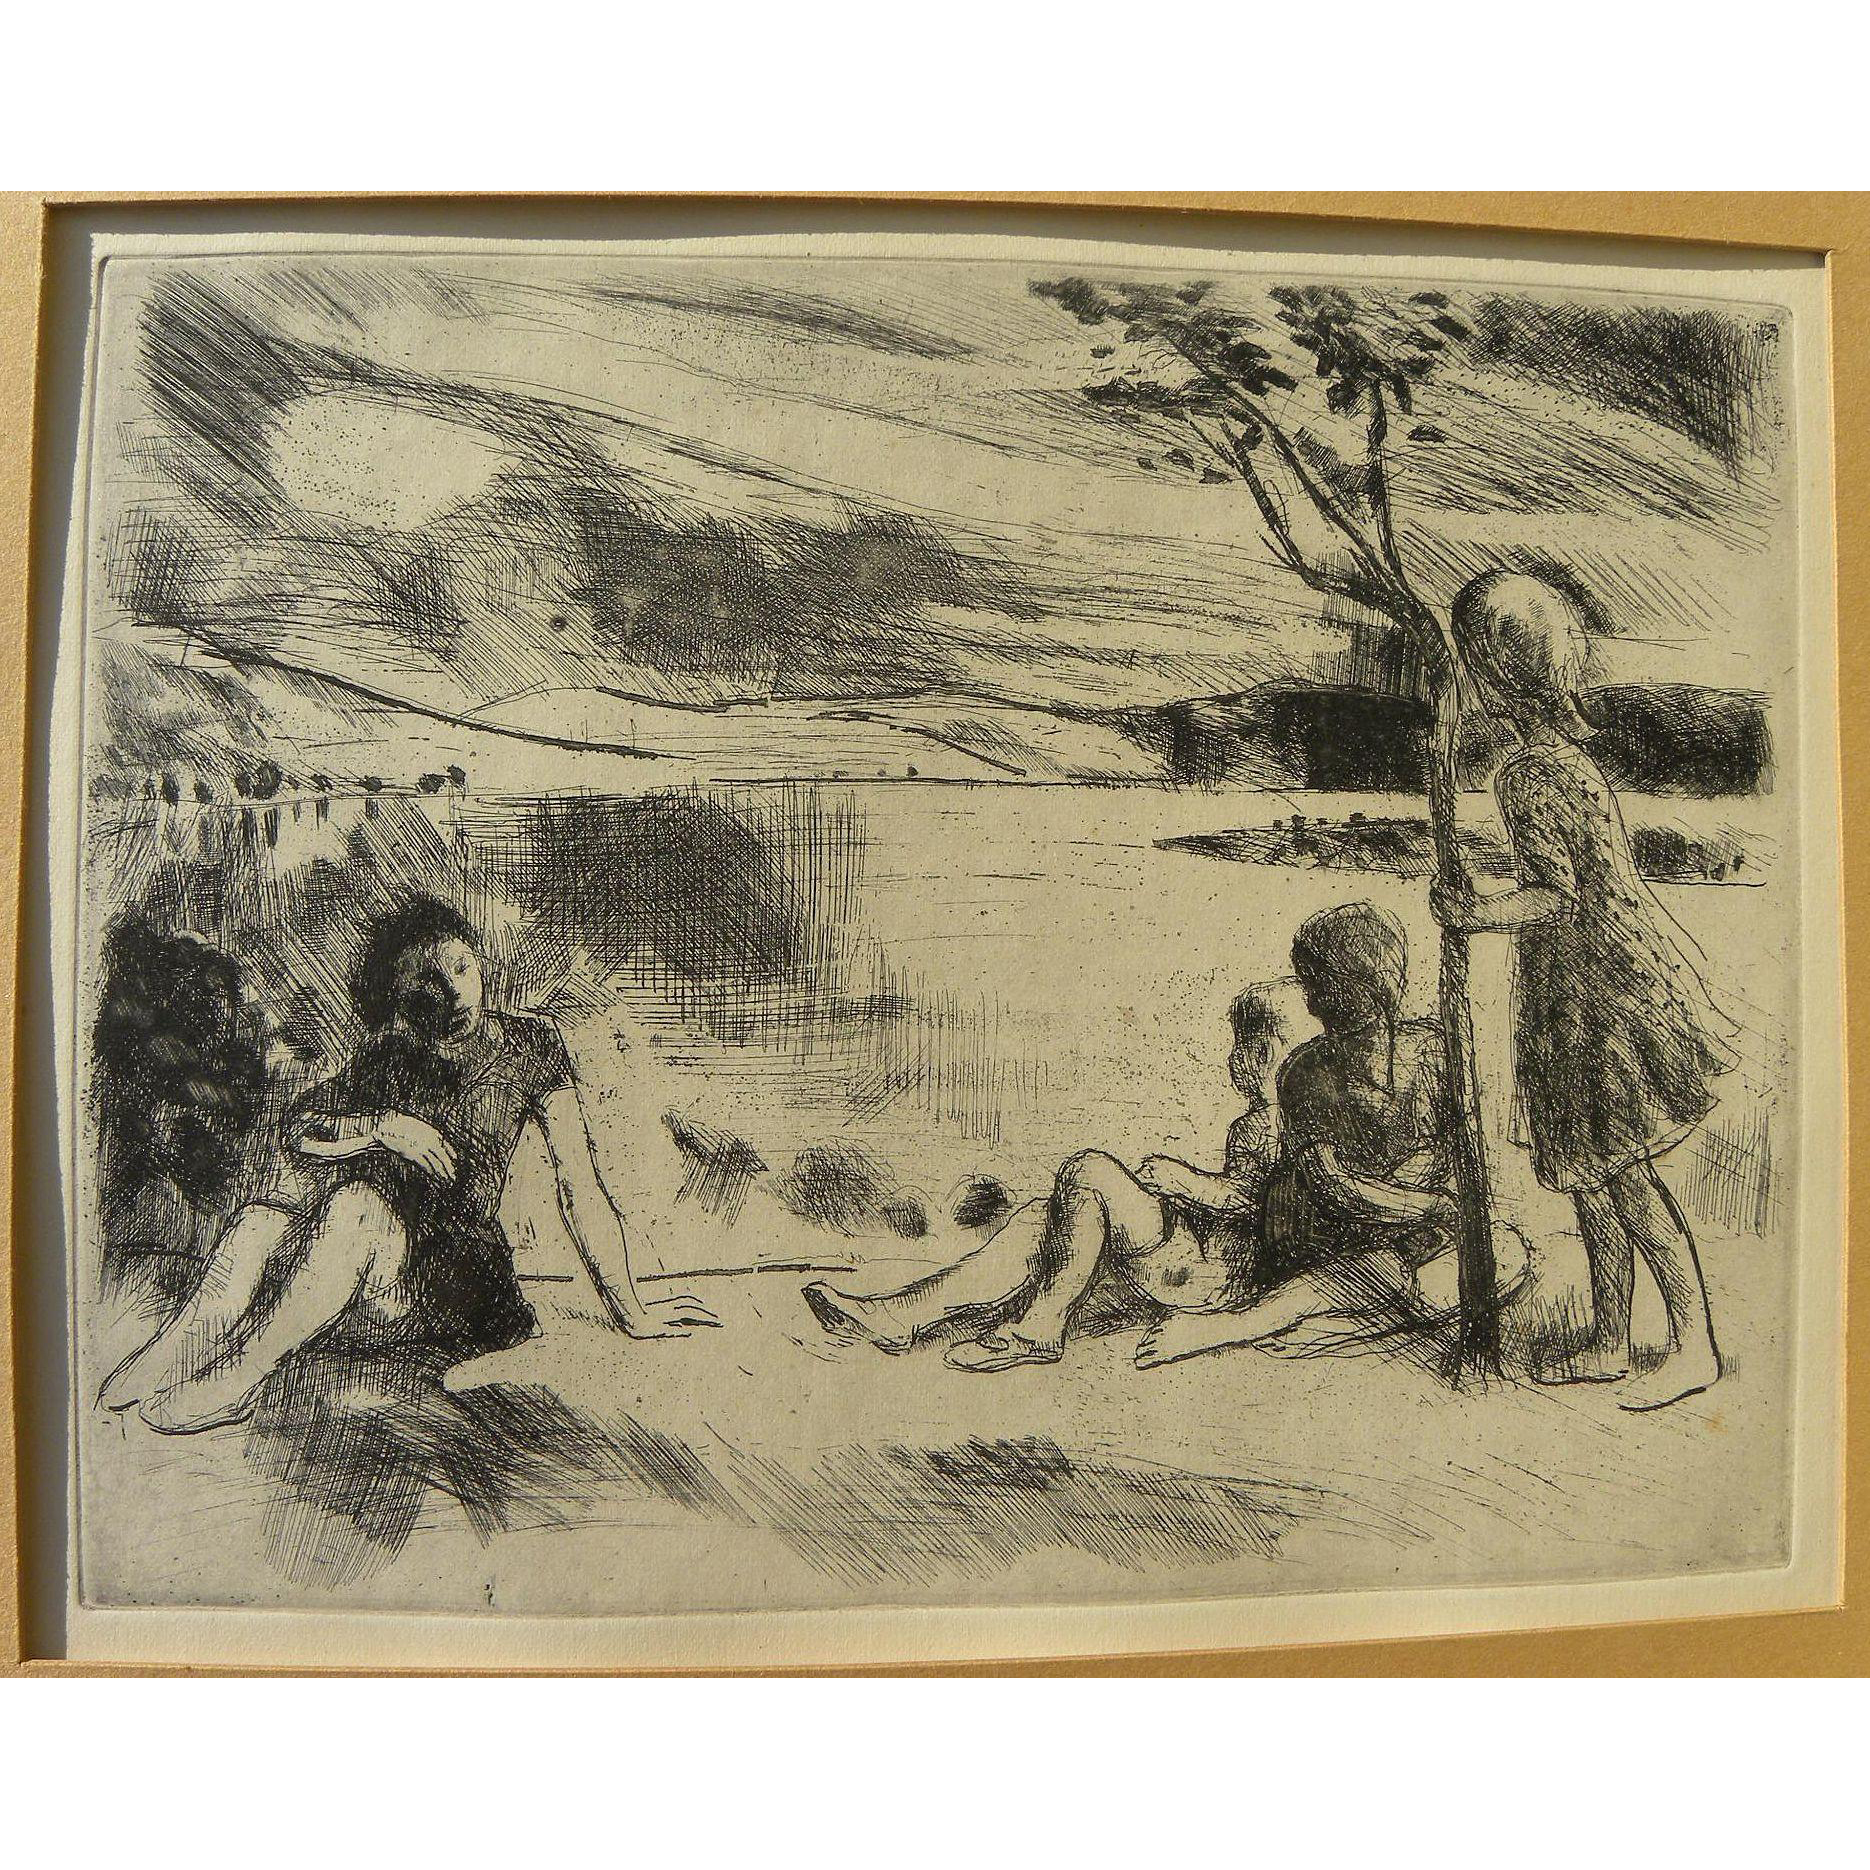 ISTVAN SZONYI (1894-1960) Hungarian art limited edition etching by master artist